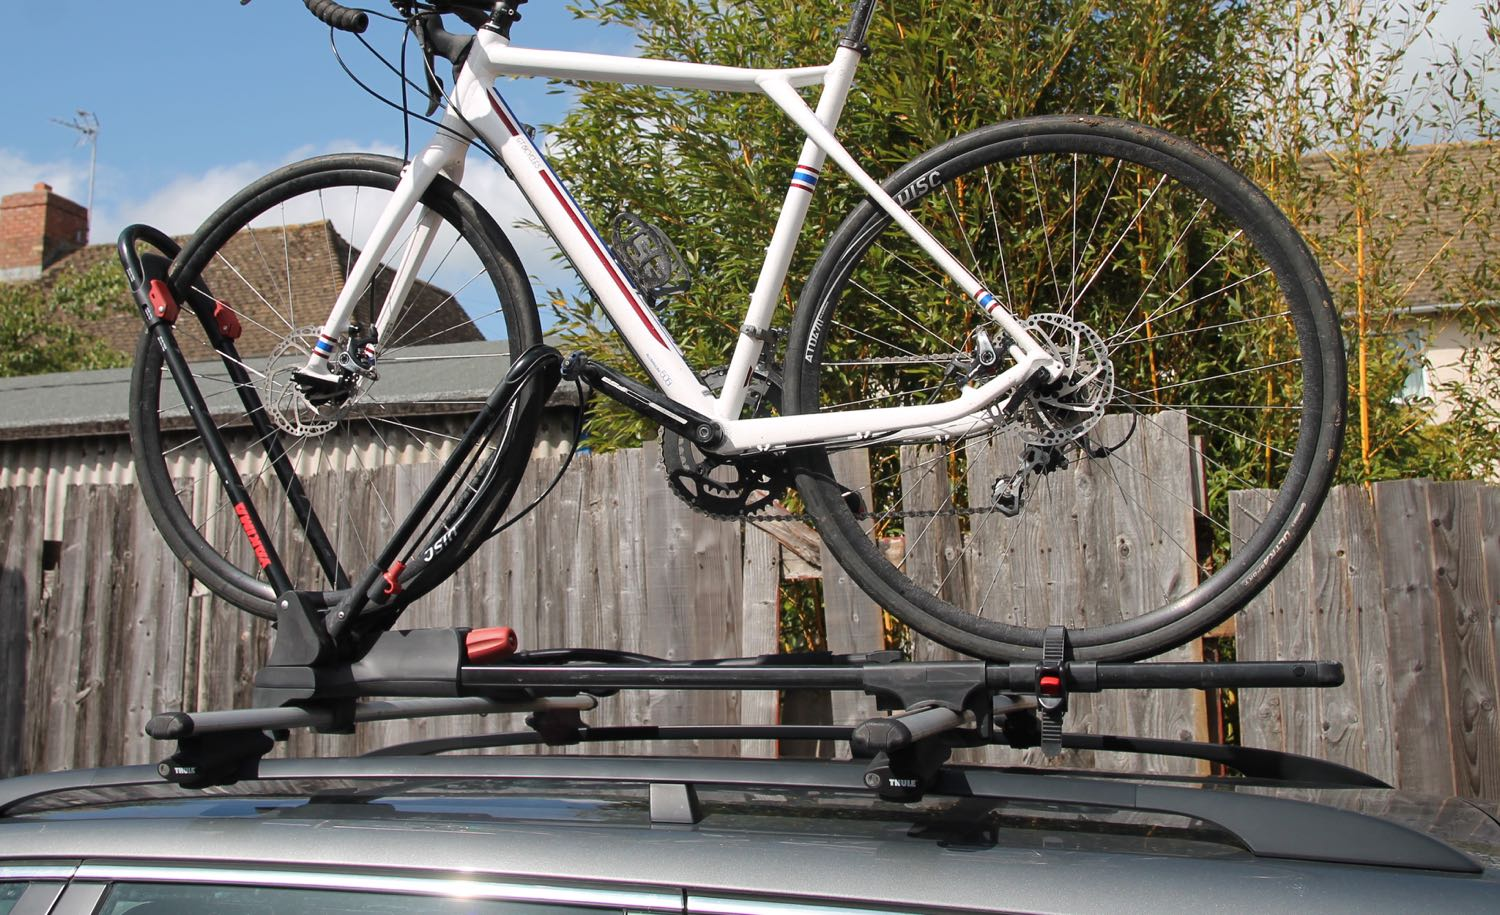 The Yakima Frontloader Bike Carrier Is Really Easy To Use Holding Bicycle Securely By Front Wheel And Avoiding Potential Frame Damage